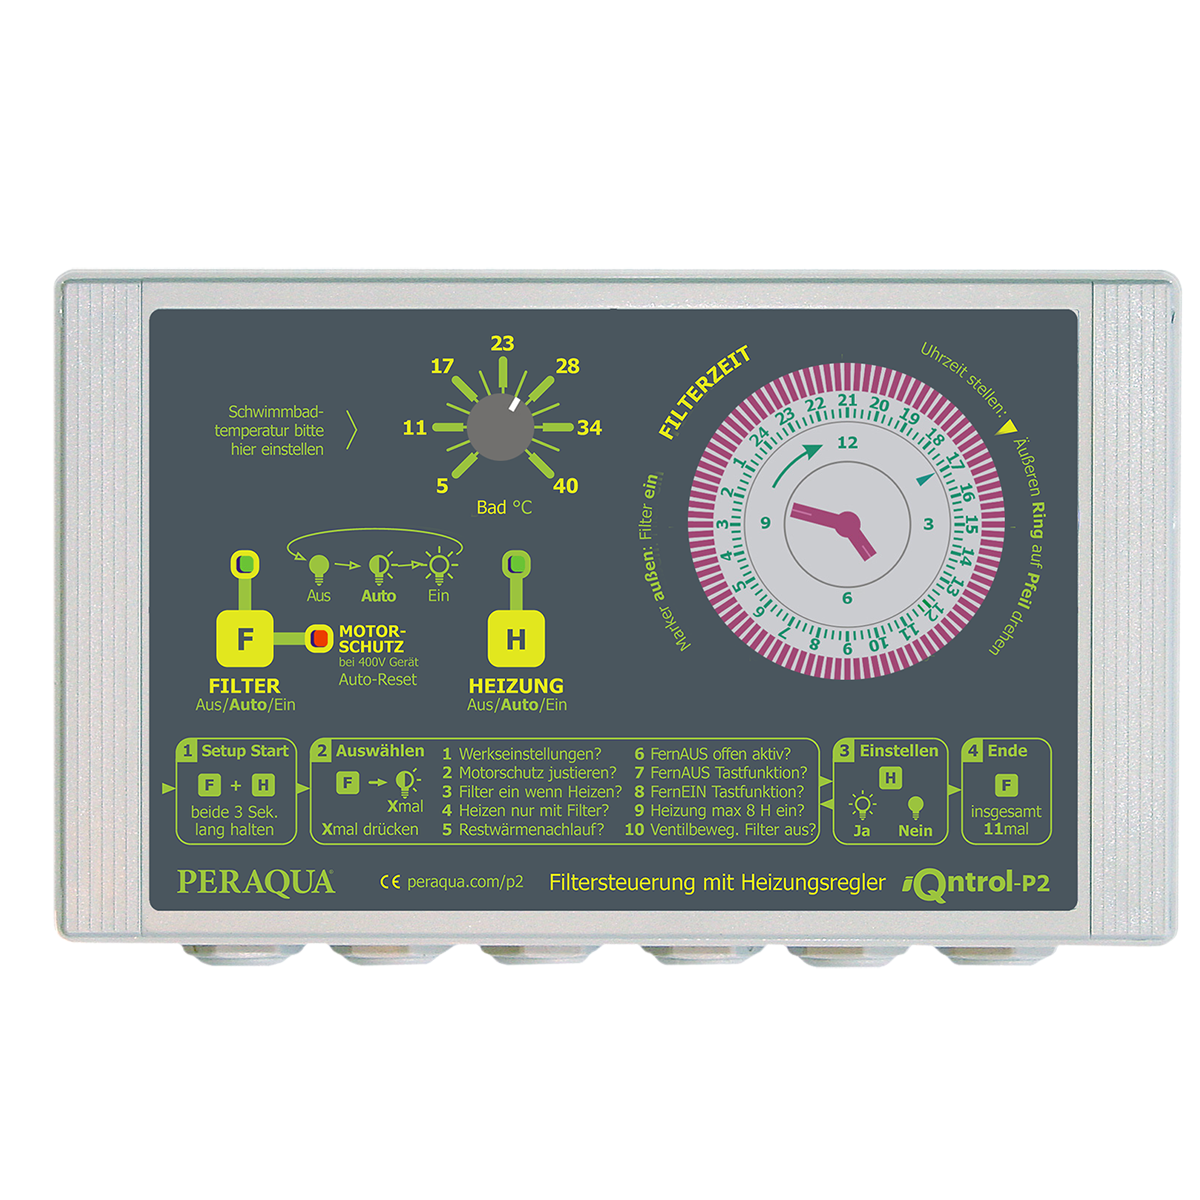 """iQntrol-P2 pump control incl. heating 230 with temp. adjustment manually, without motor protection, with temp. sensor brass chromed d10 and housing for sensor ½"""" iQntrol-P2 pump control incl. heating 230 with temp. adjustment manually, without motor protection, with temp. sensor brass chromed d10 and housing for sensor ½"""""""